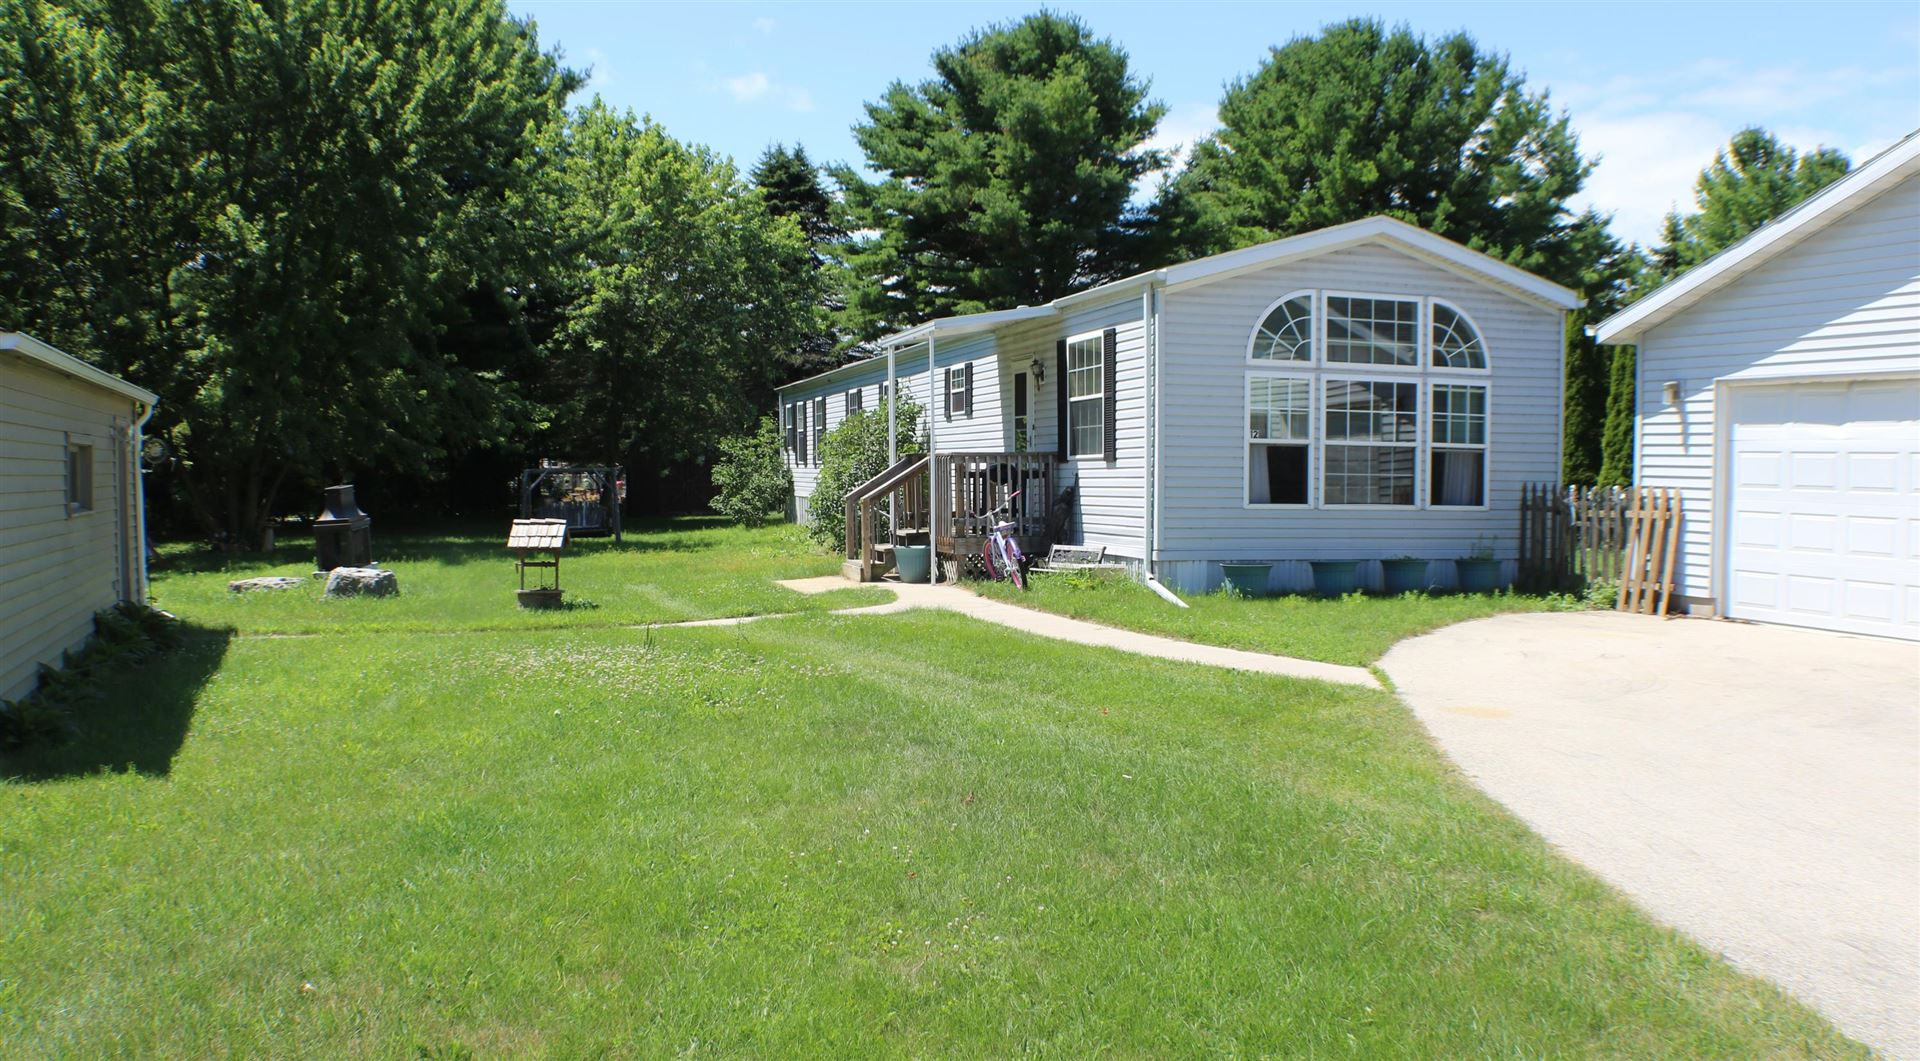 7136 Tannery Rd, Two Rivers, WI 54241 - #: 1700694